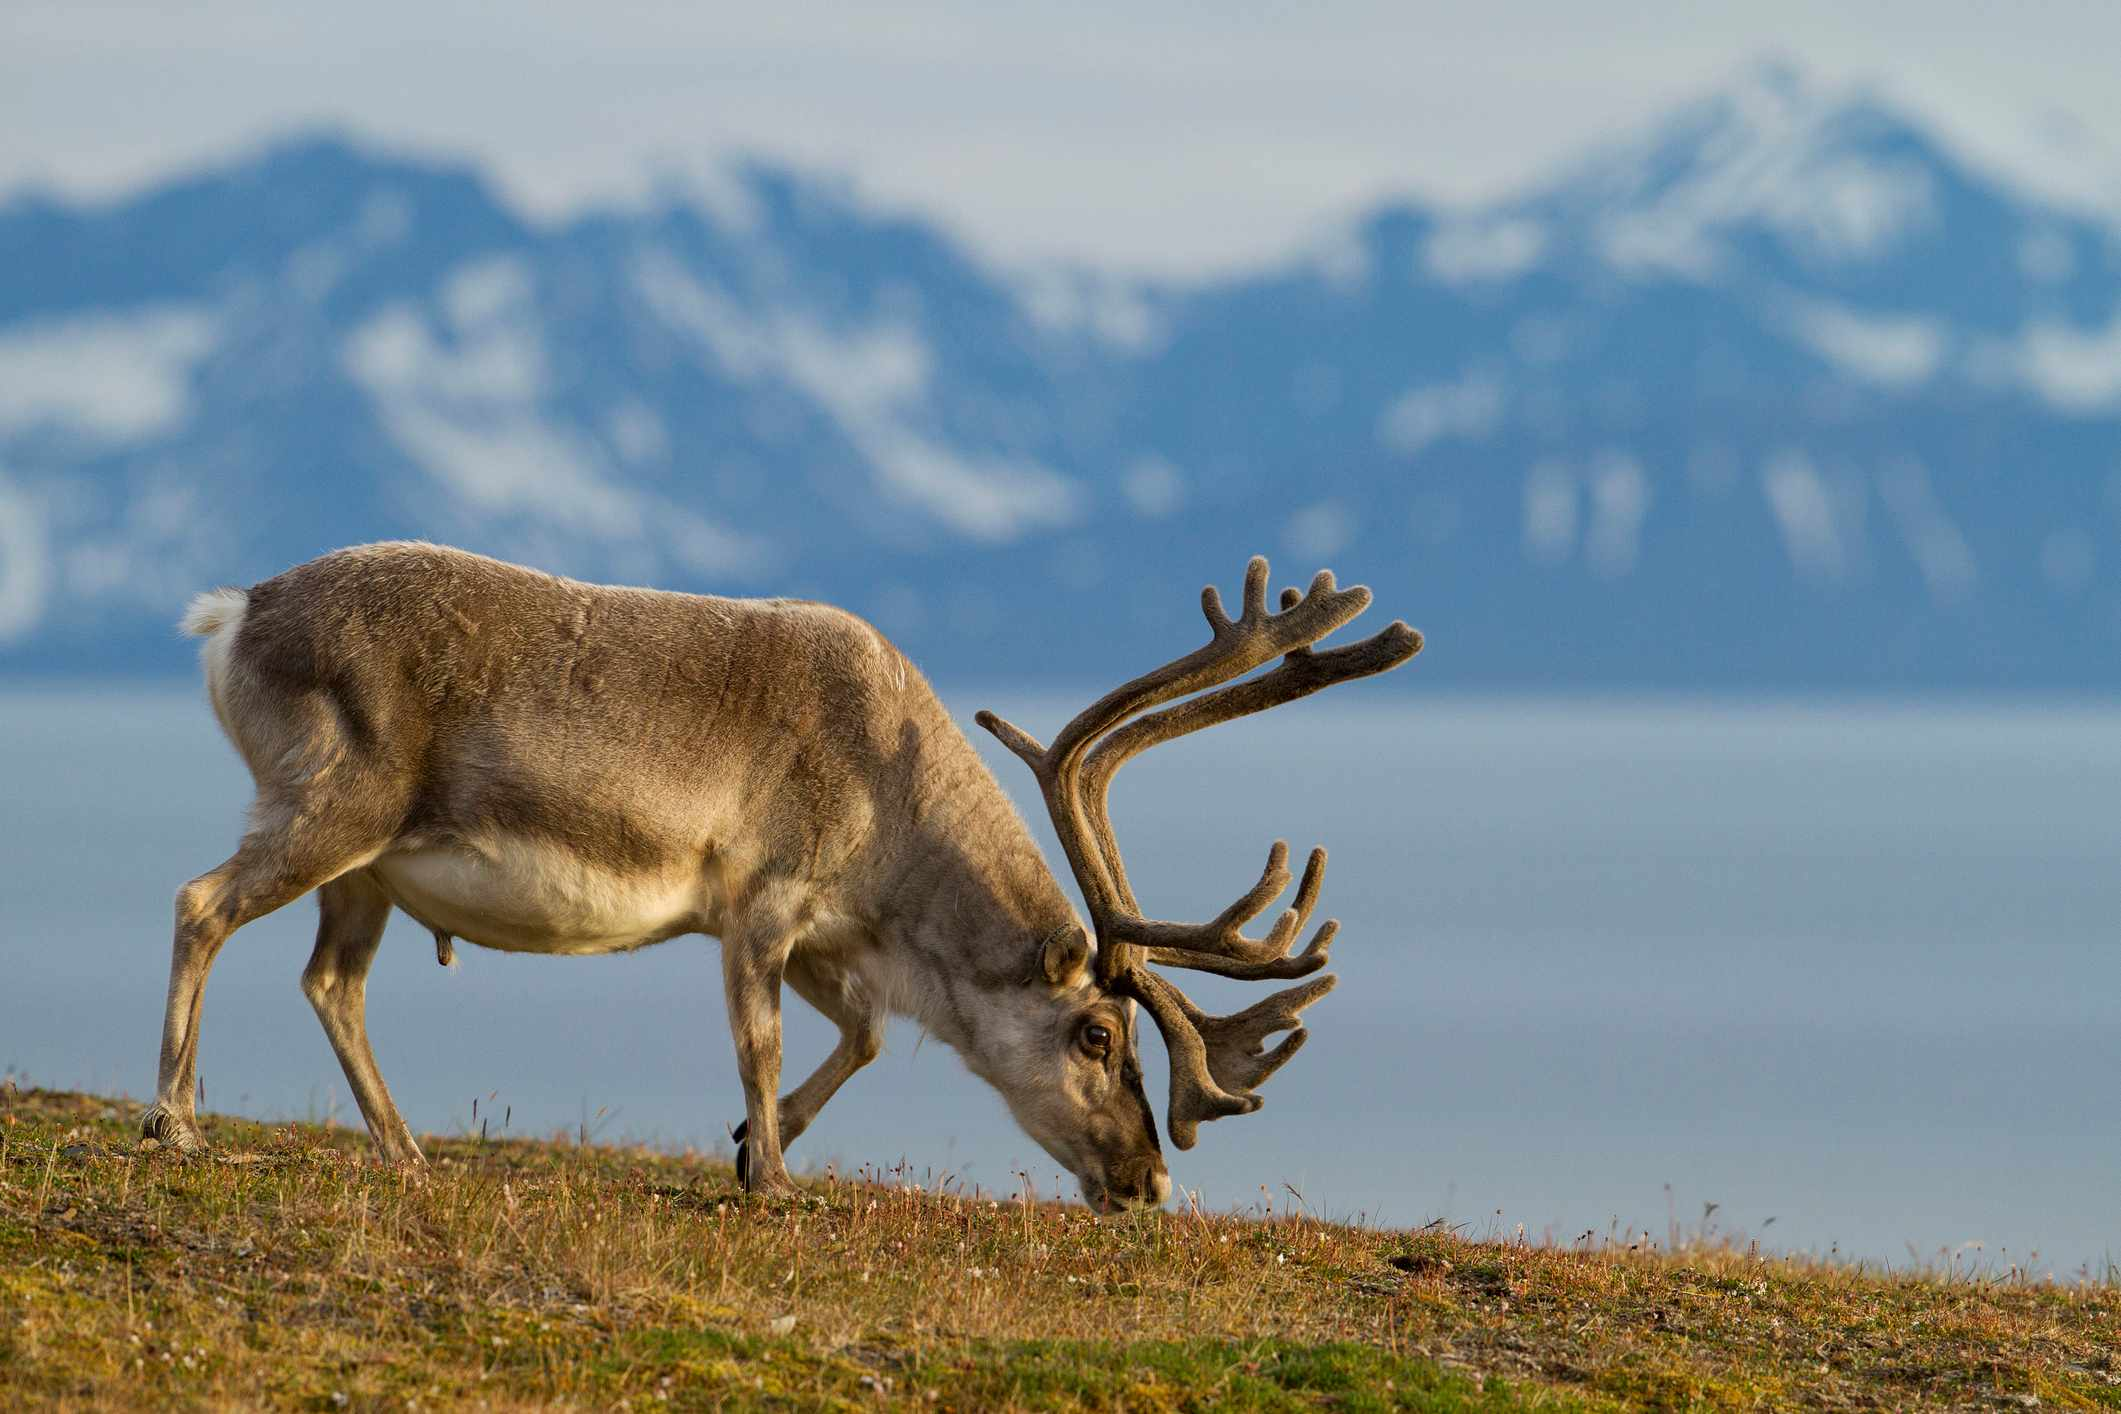 Svalbard reindeer grazing with mountains behind. © Valentin Heimer/Getty